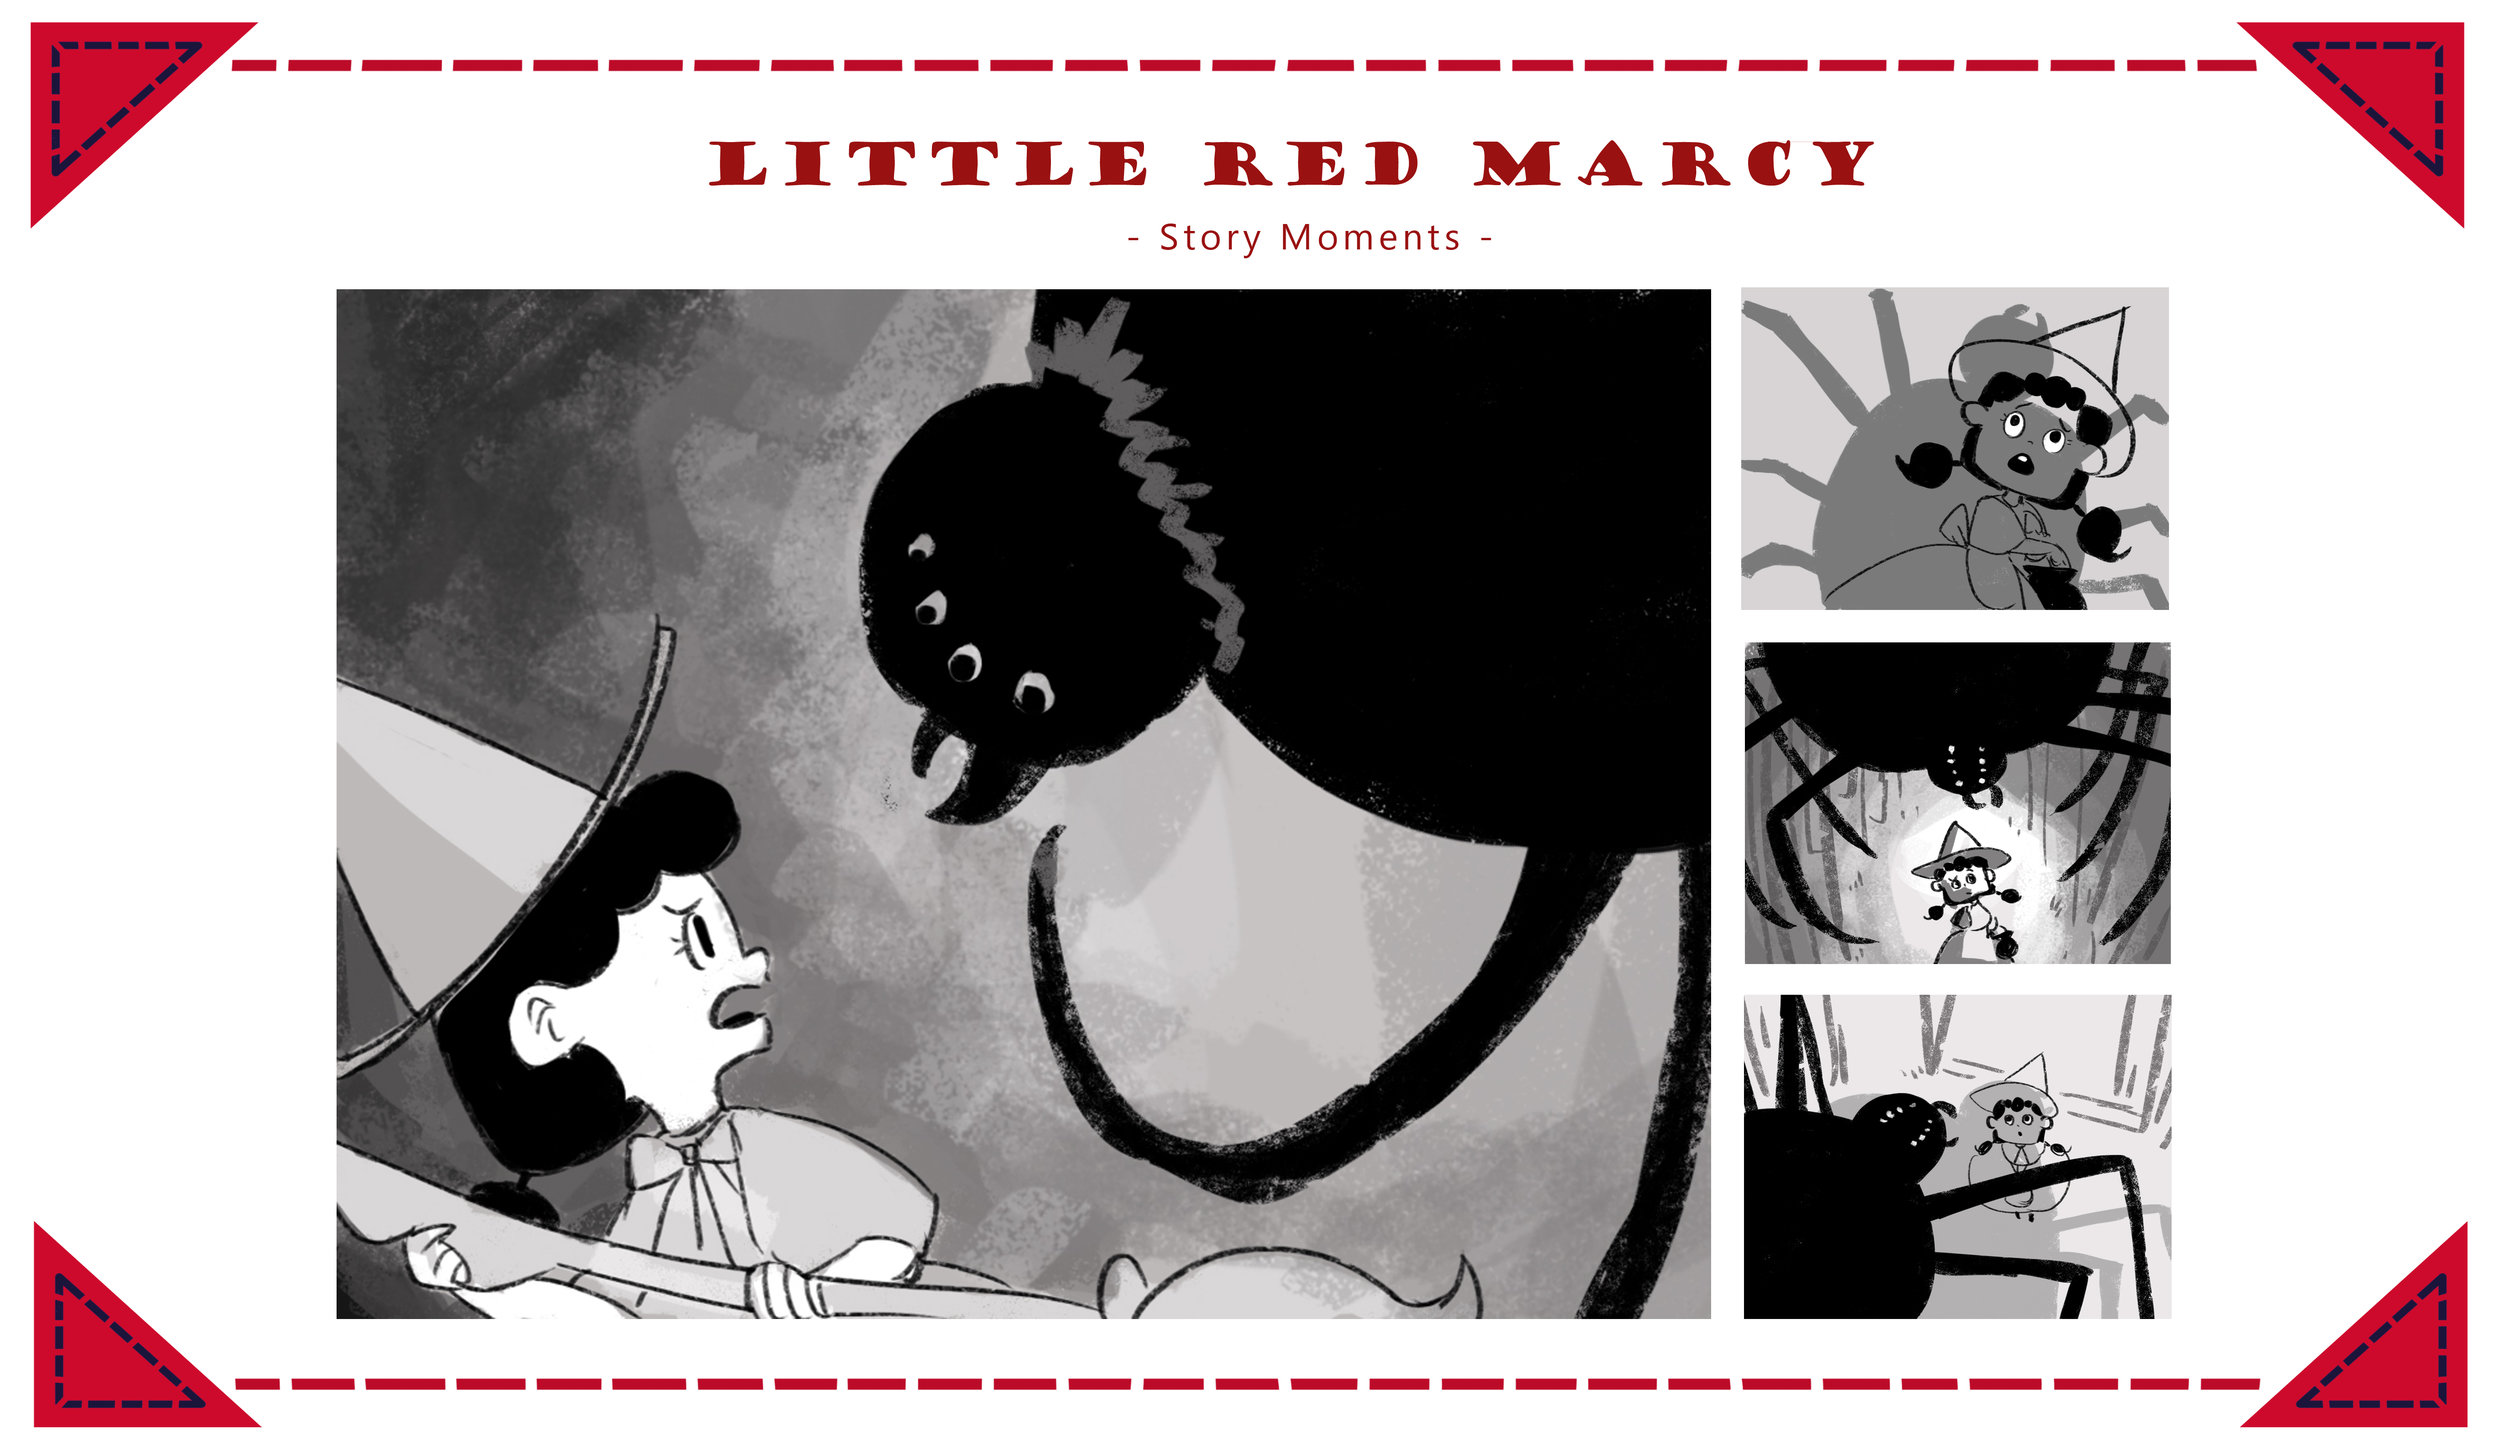 Little Red Marcy_05.jpg